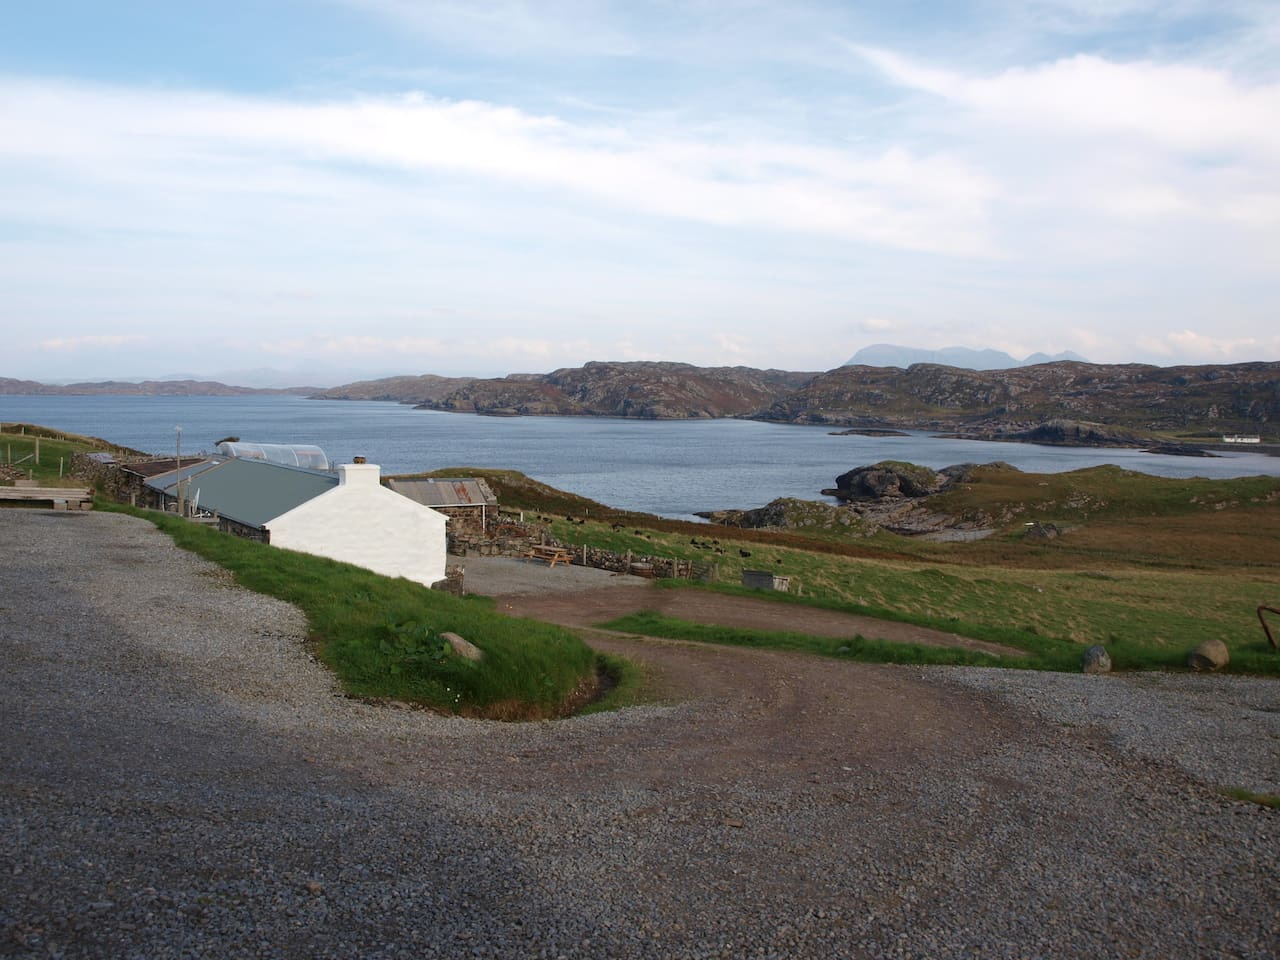 The Bothy, Laid Croft and Clashnessie Bay